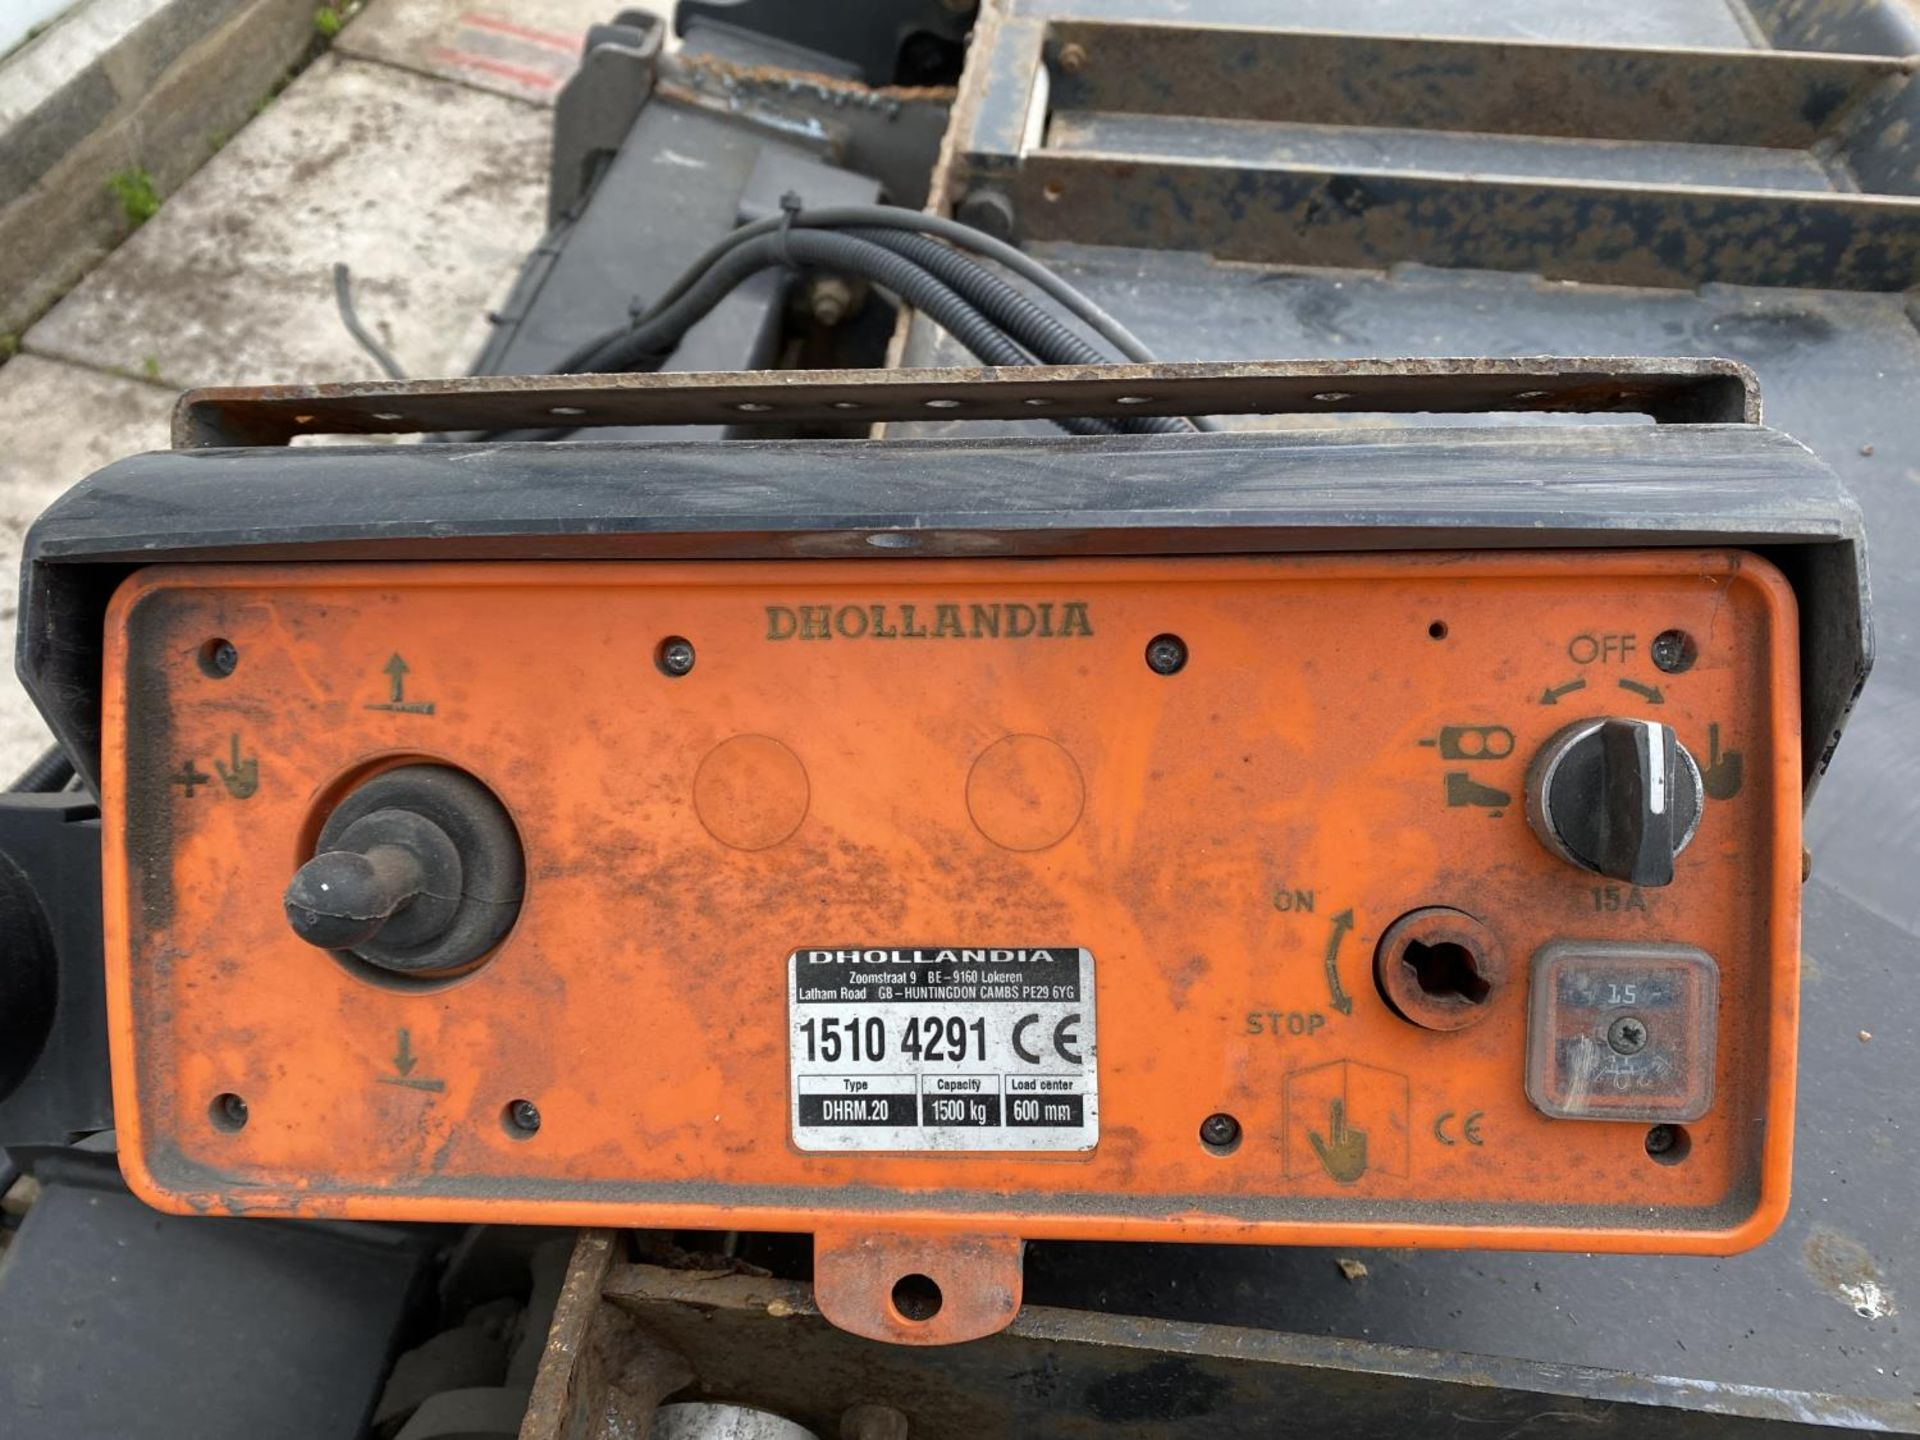 A D.HOLLANDIA TAIL LIFT 1500 KG. BELIEVED WORKING NO WARRANTY - NO VAT - Image 2 of 6